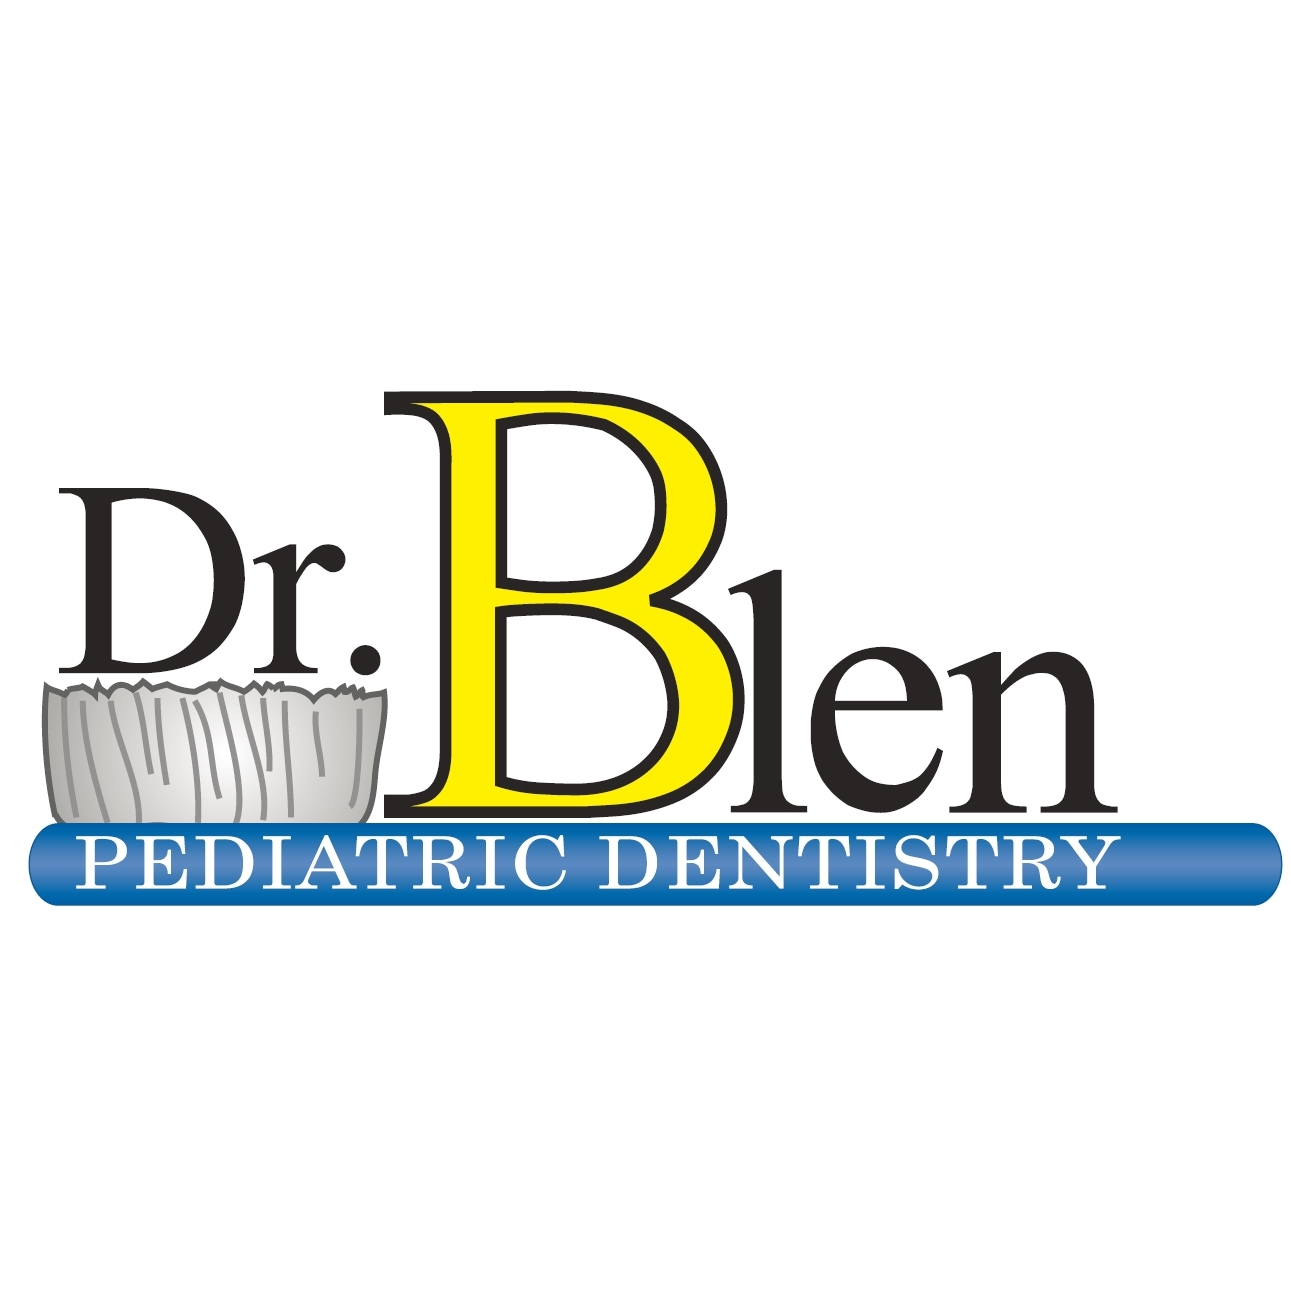 Pediatric Dentistry with Dr. B Michael Blen DDS